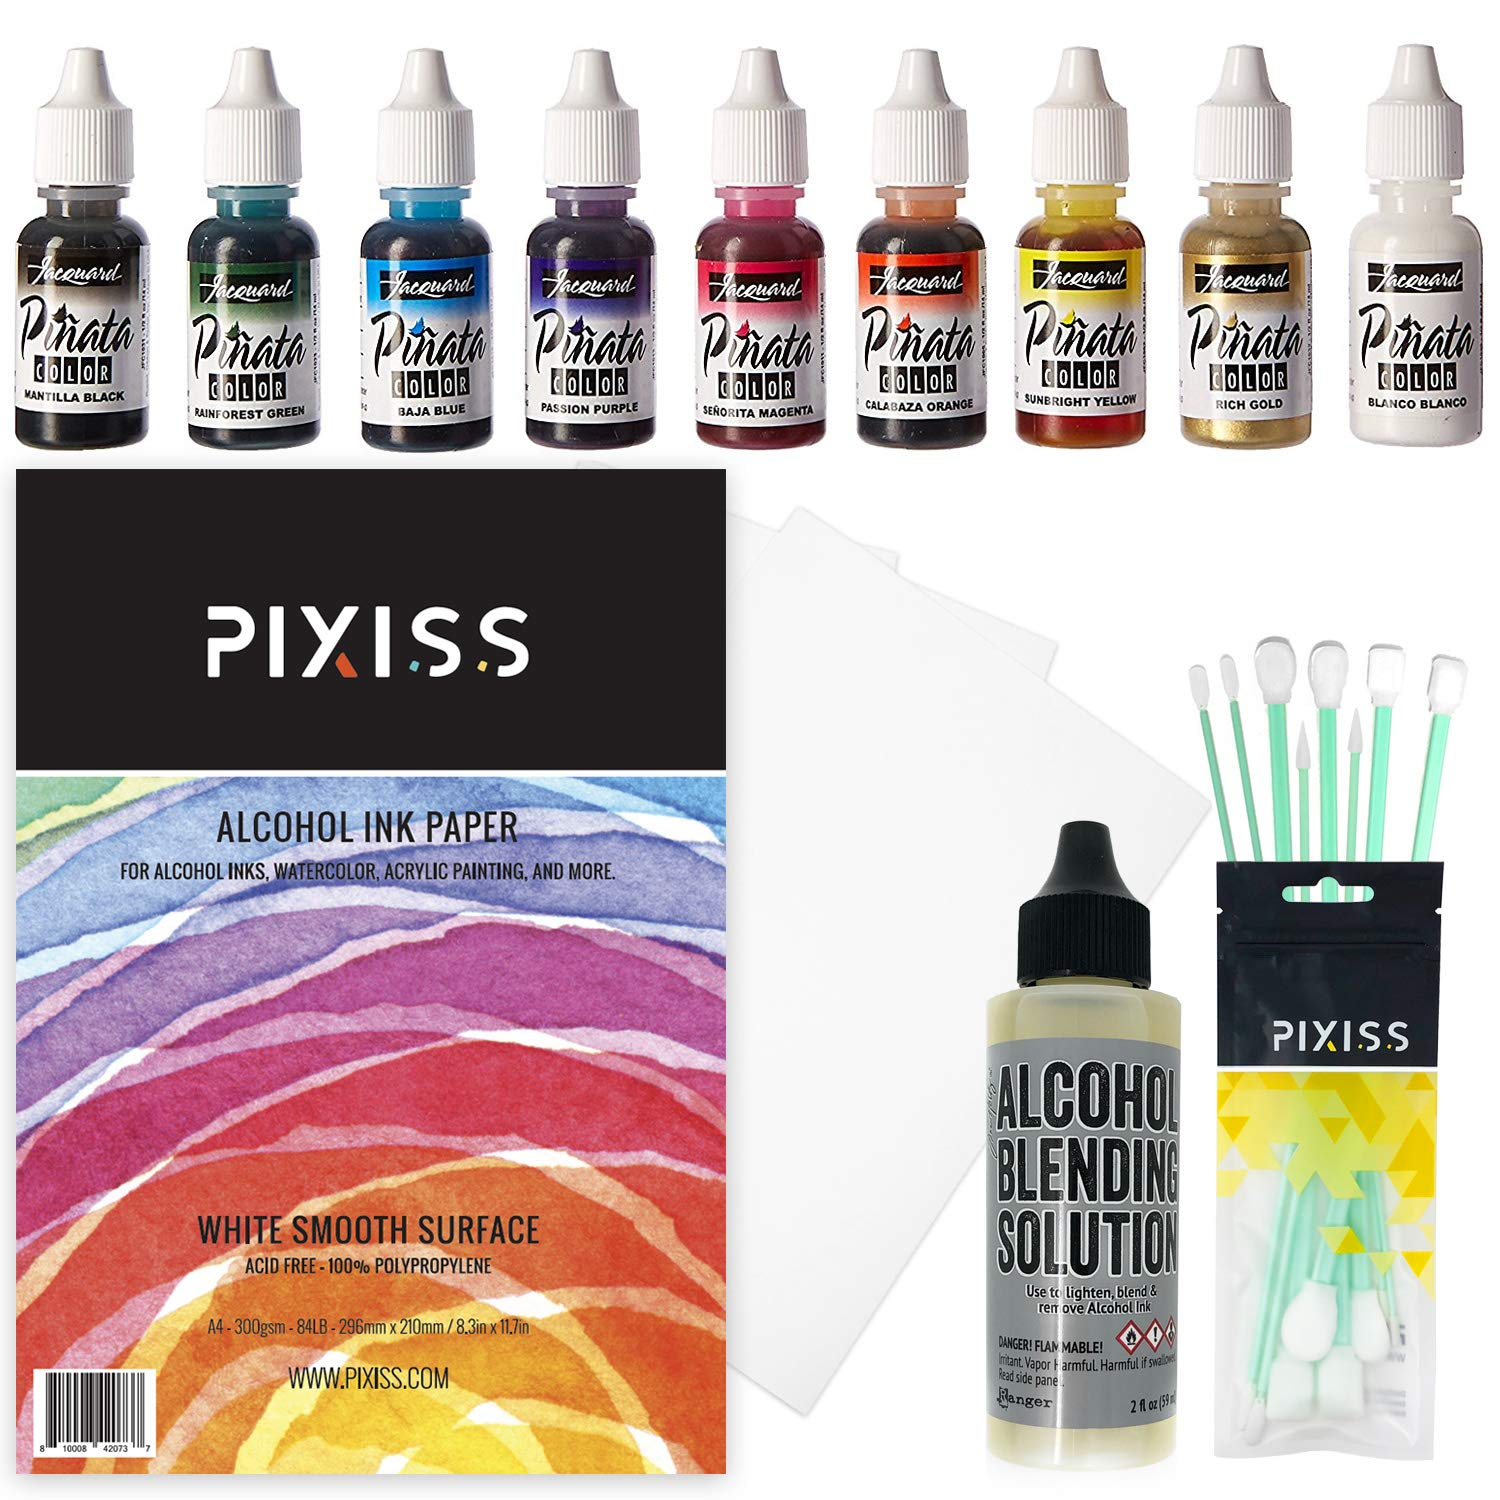 Jacquard Pinata Color Exciter Pack Alcohol Ink Bundle with Alcohol Blending Solution, Pixiss Blending Tools and Pixiss 9x12 Inch Alcohol Ink Paper by GrandProducts